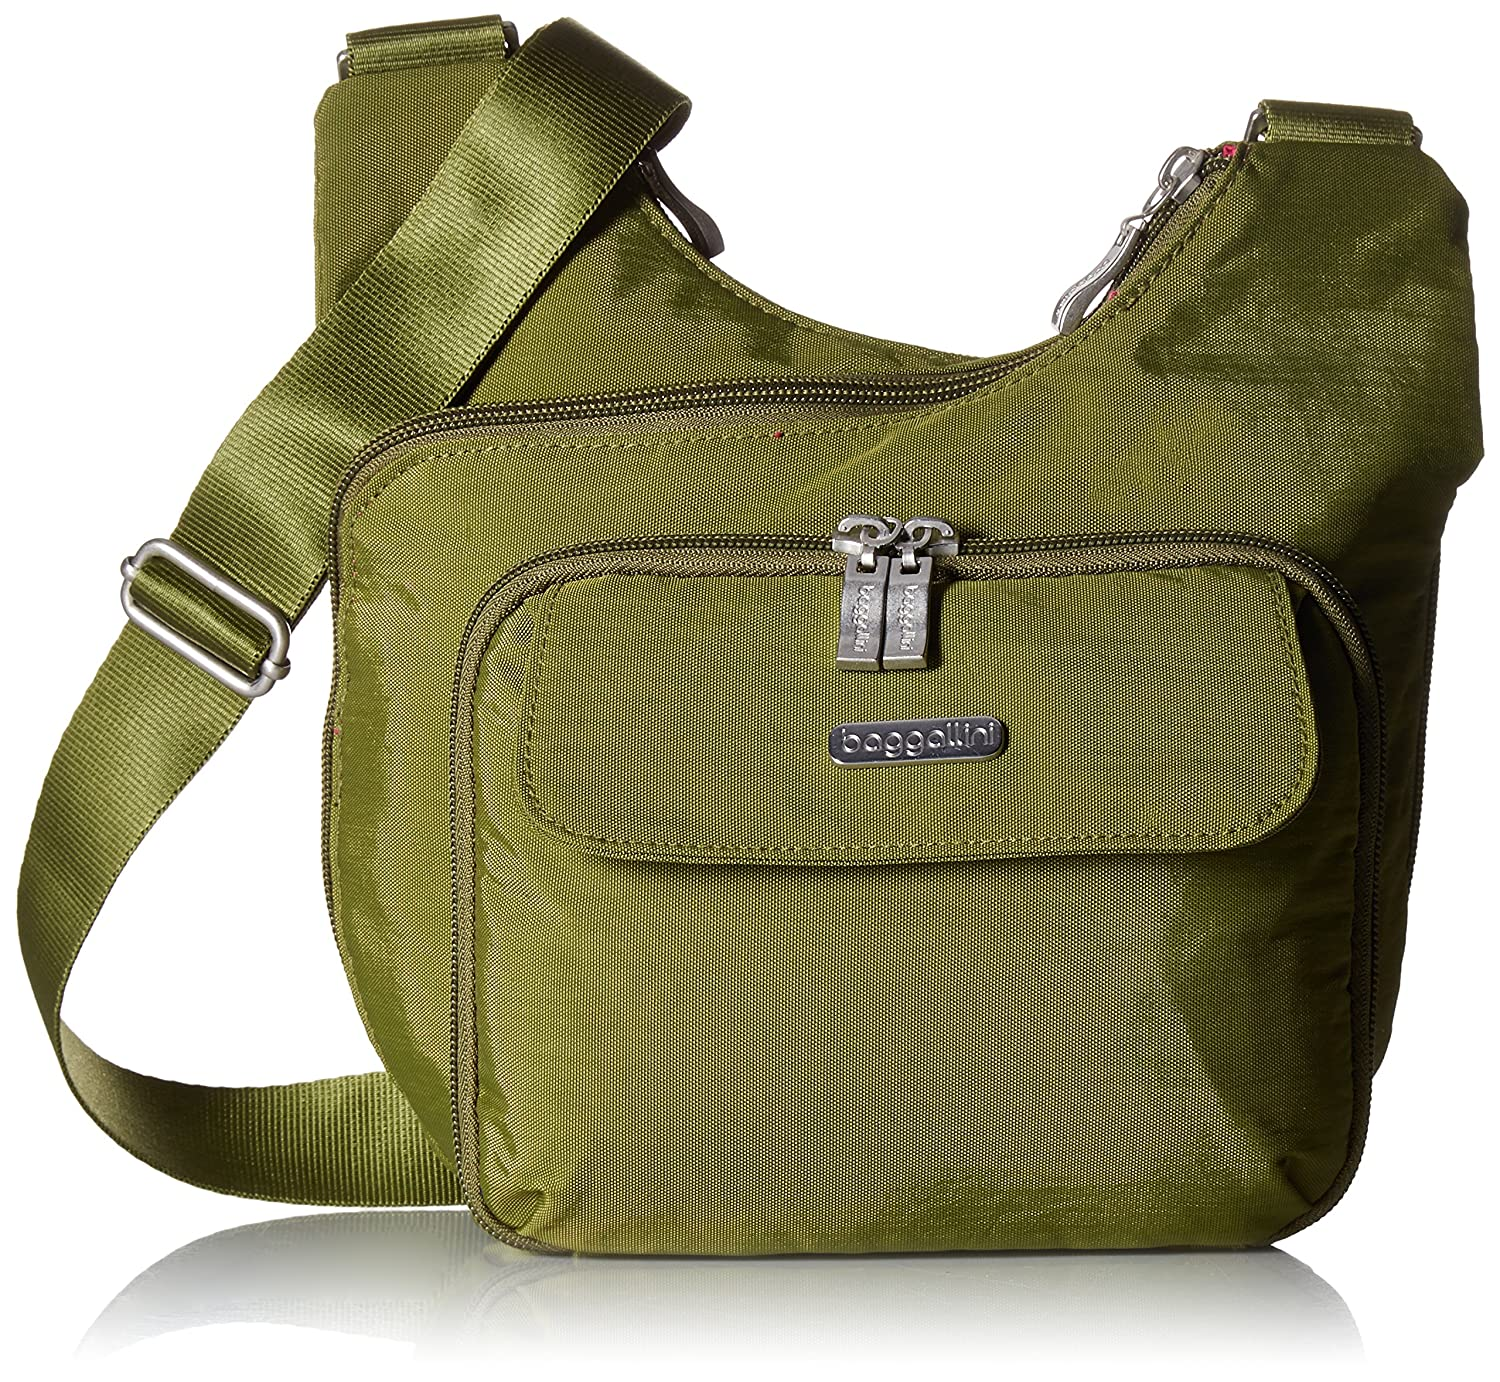 Baggallini Criss Cross Bagg – Lightweight Travel Purse with Zippered Interior and Exterior Pockets